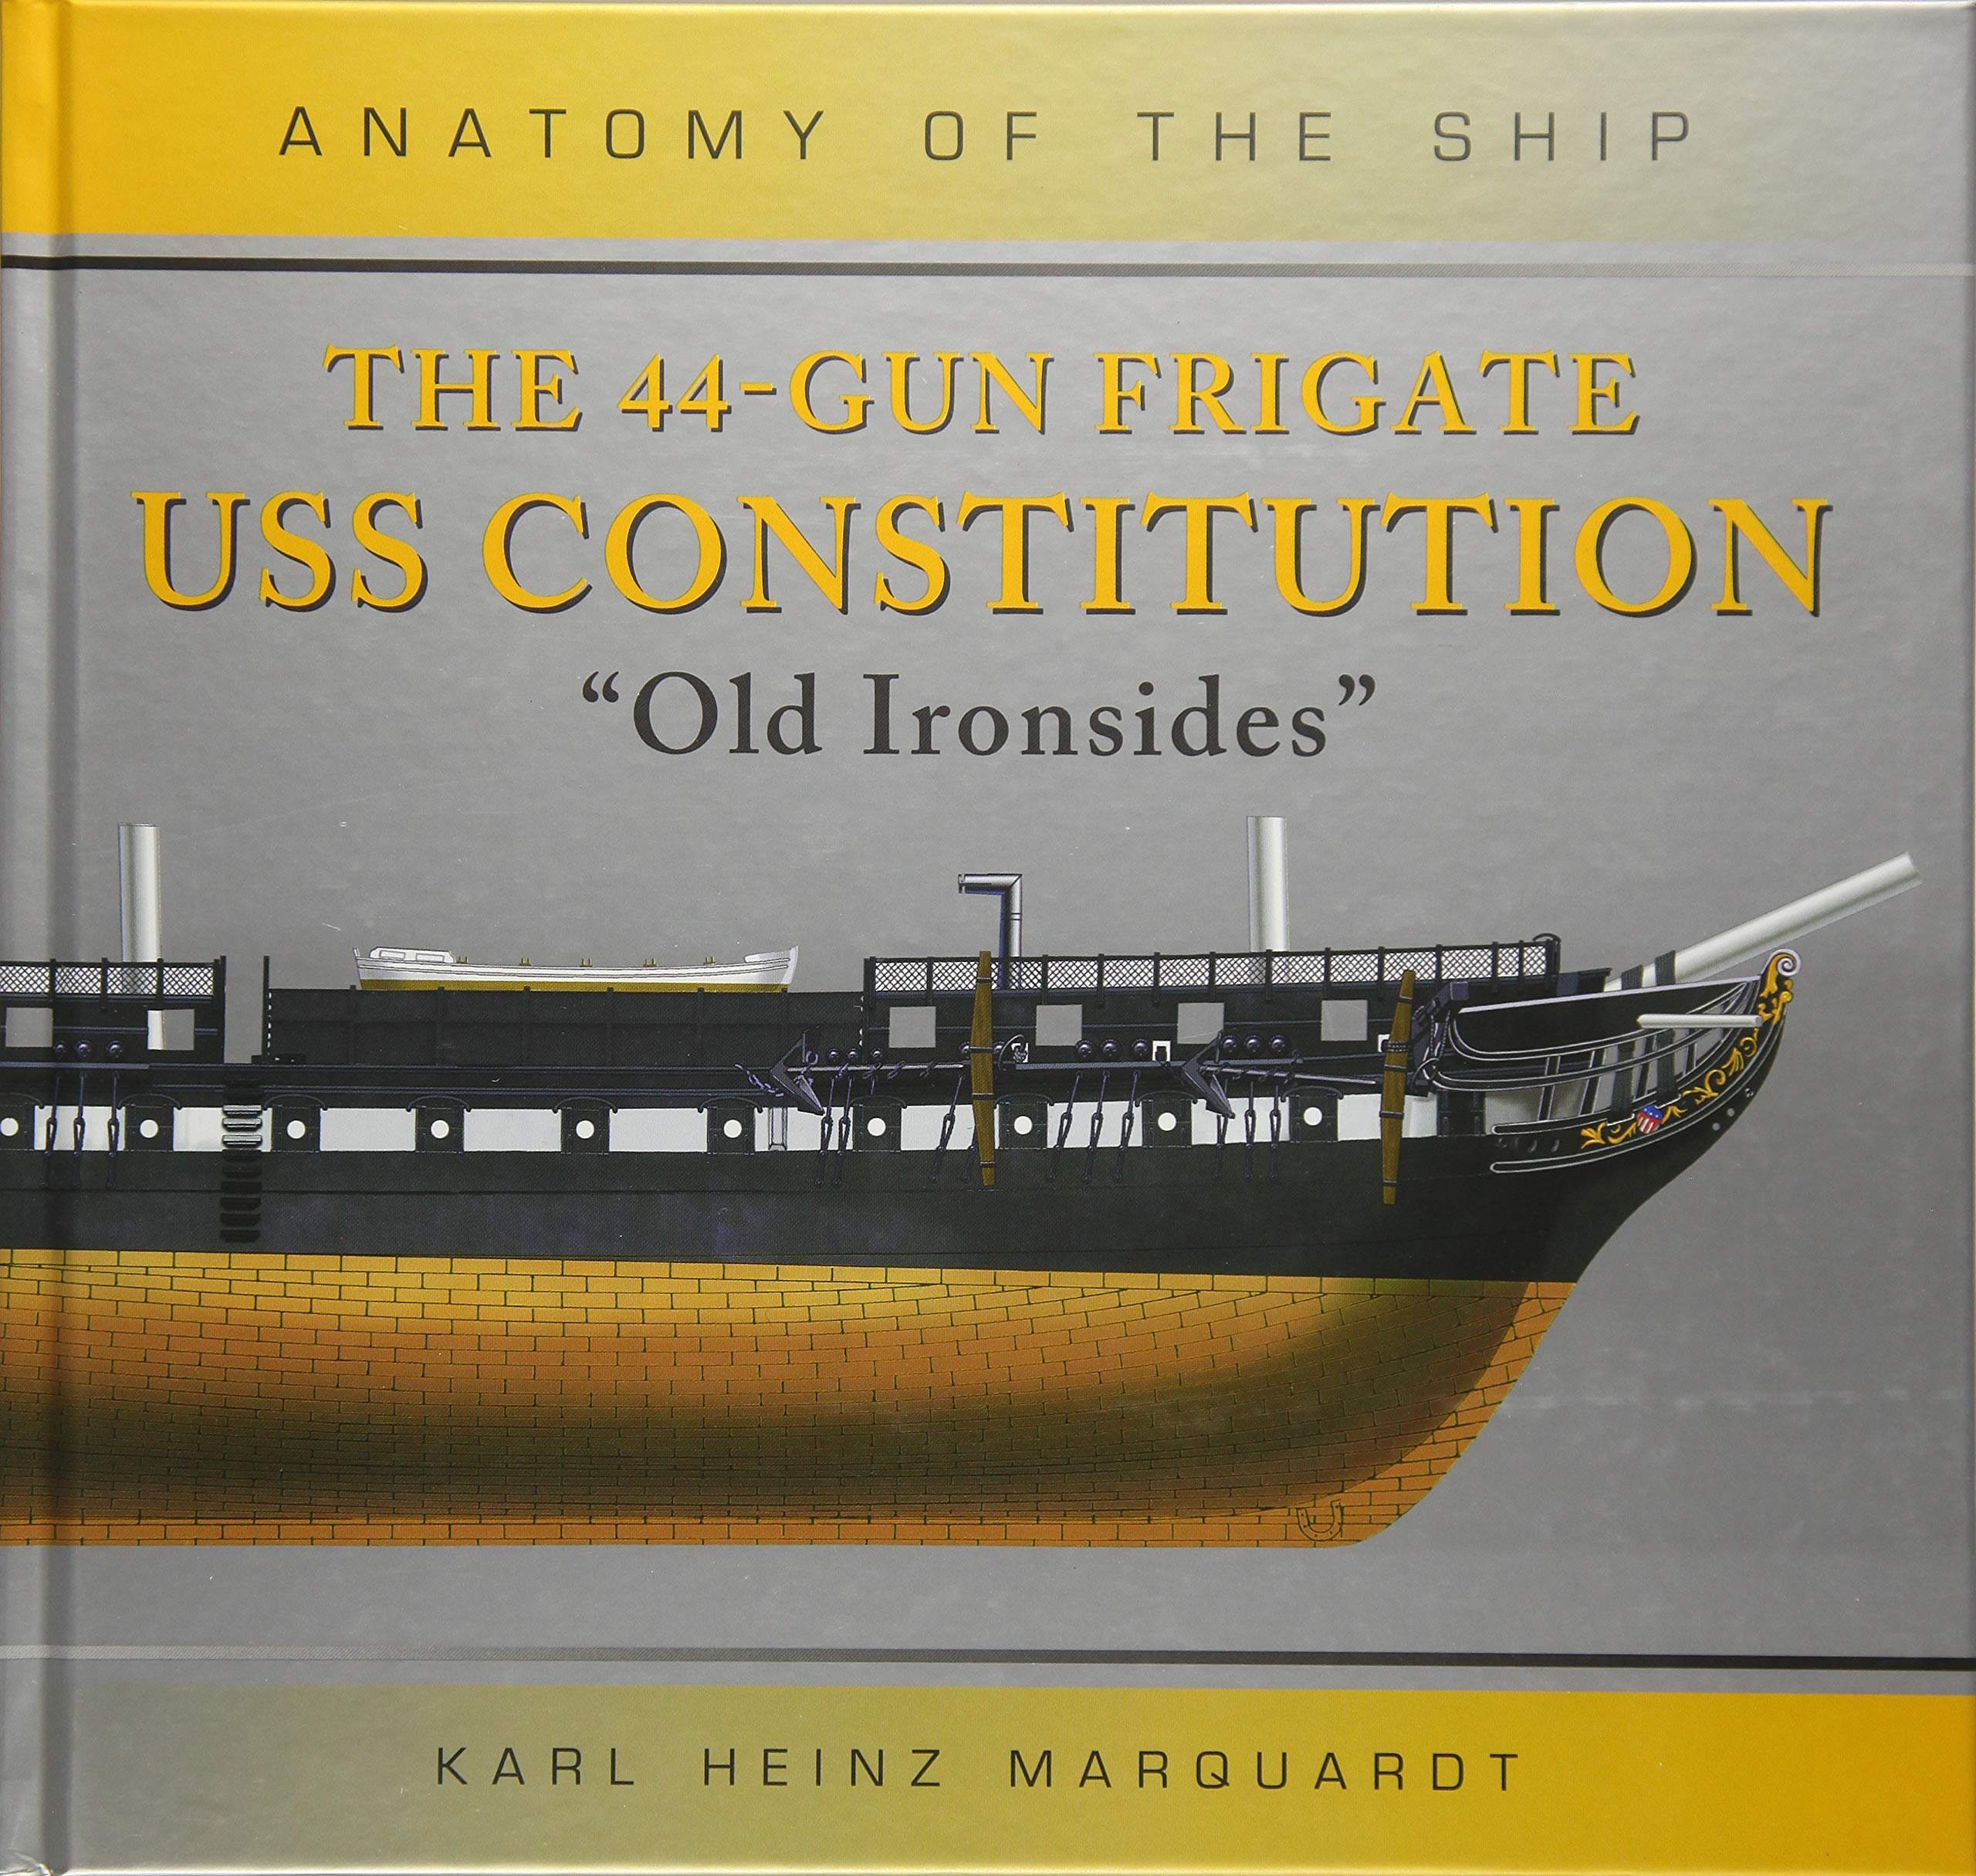 The 44 Gun Frigate Uss Constitution Old Ironsides Anatomy Of The